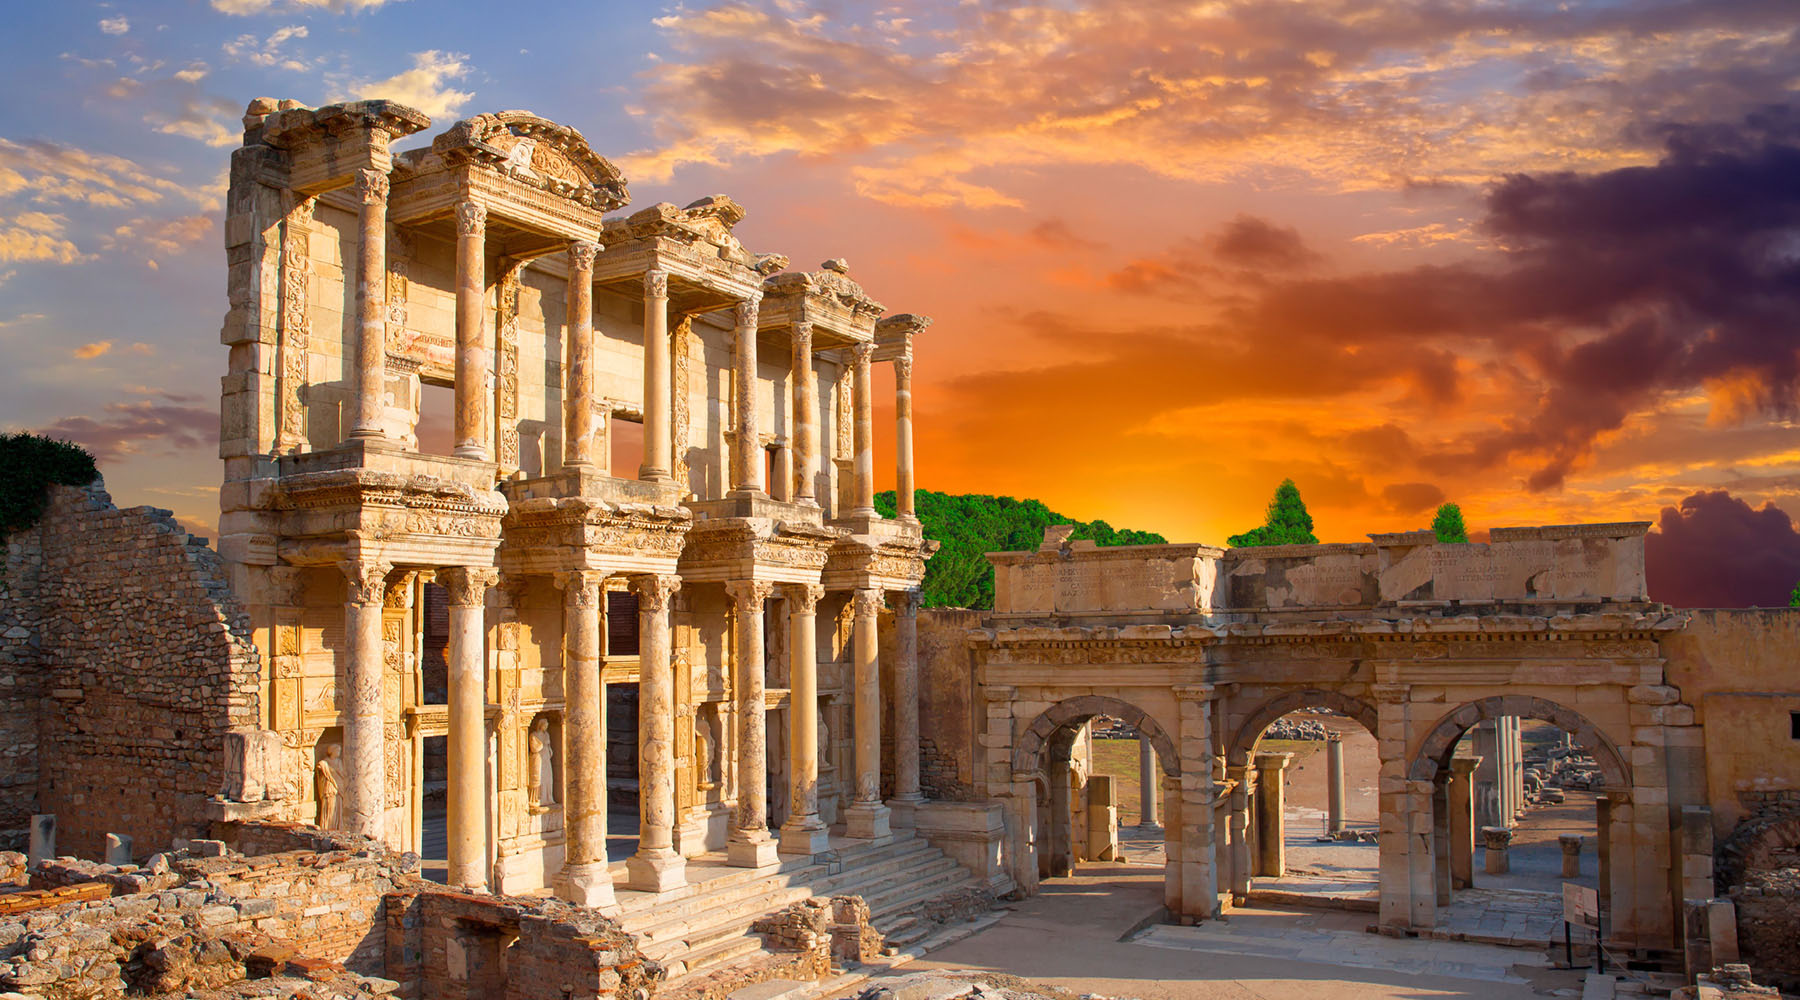 Seventh Heaven: The Wonders of the Ancient World